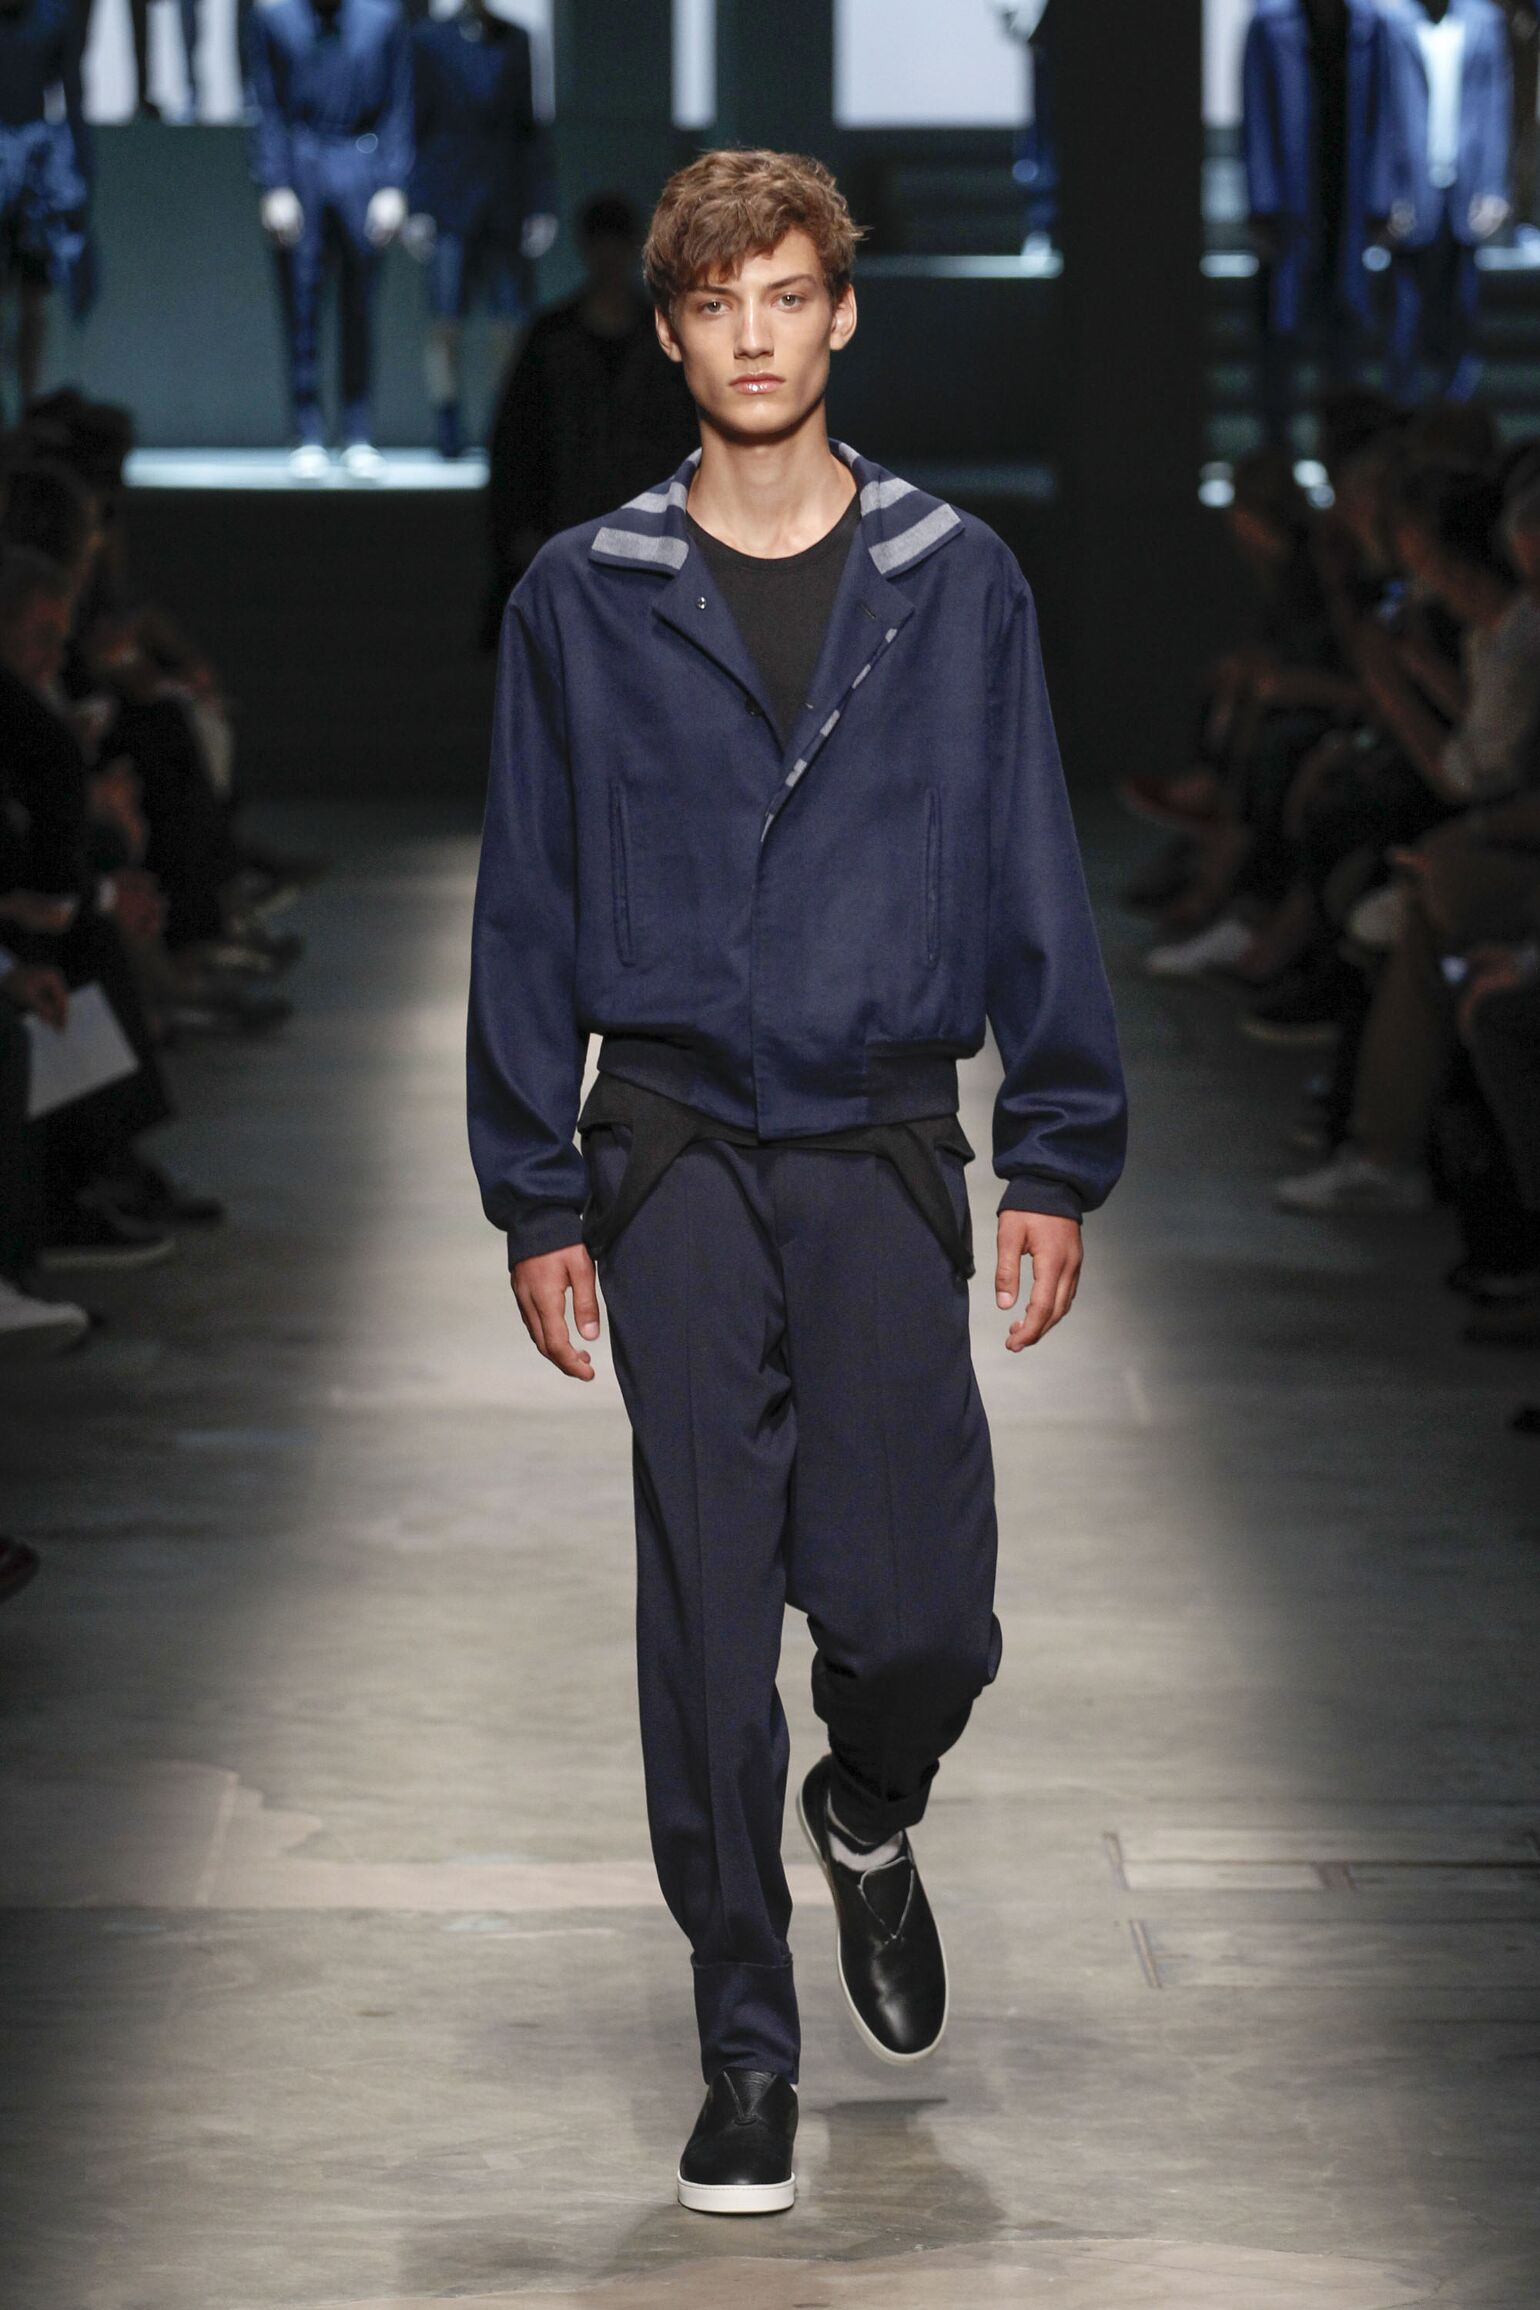 Summer 2015 Fashion Show Ermenegildo Zegna Couture